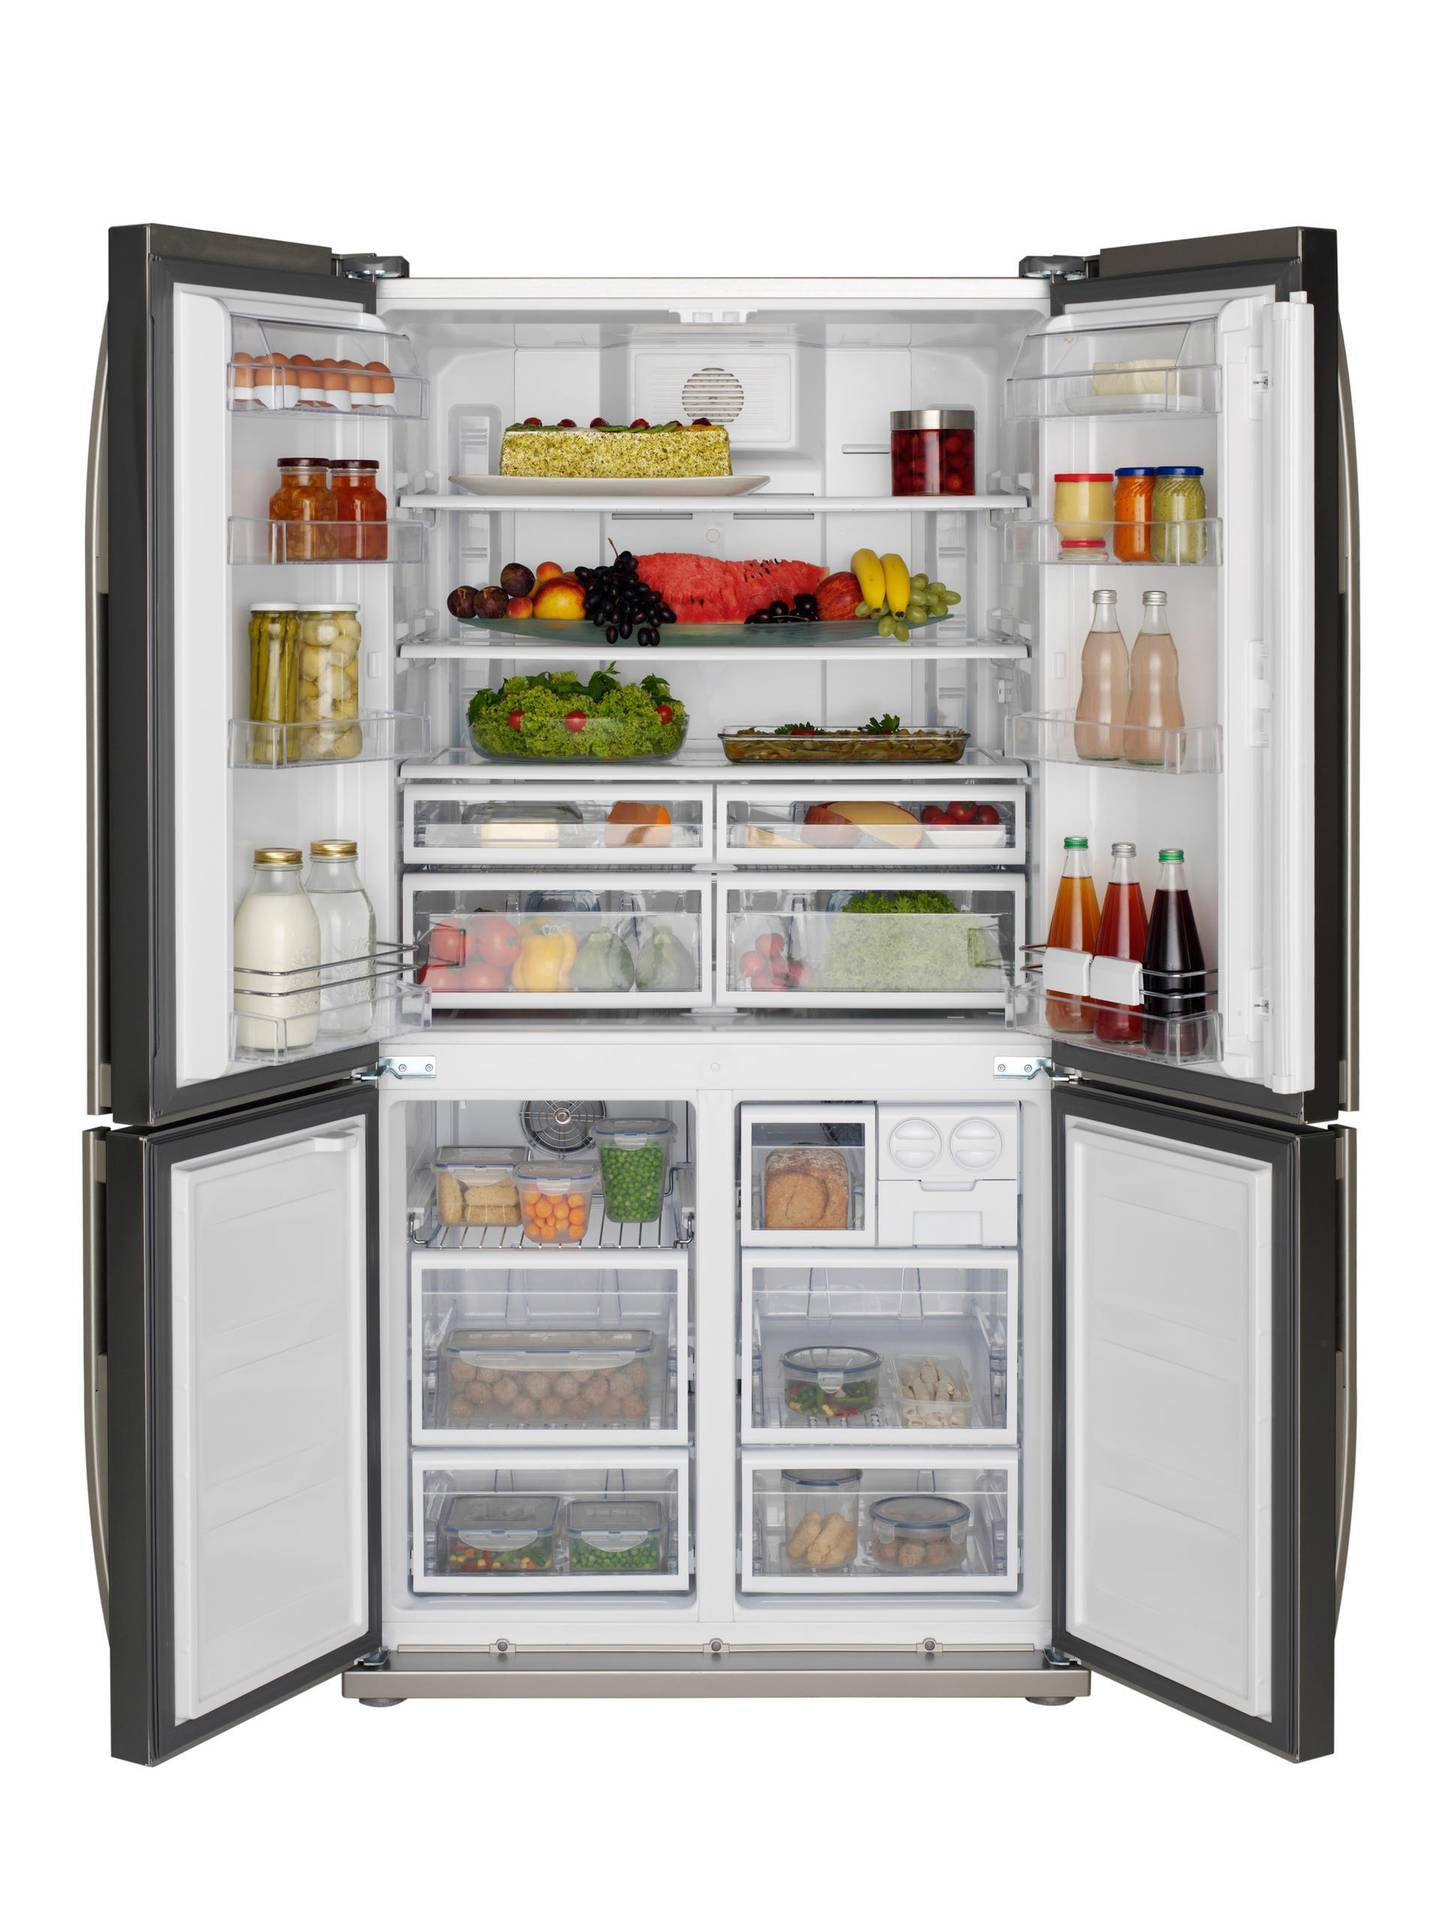 Refrigerator. Getty Images